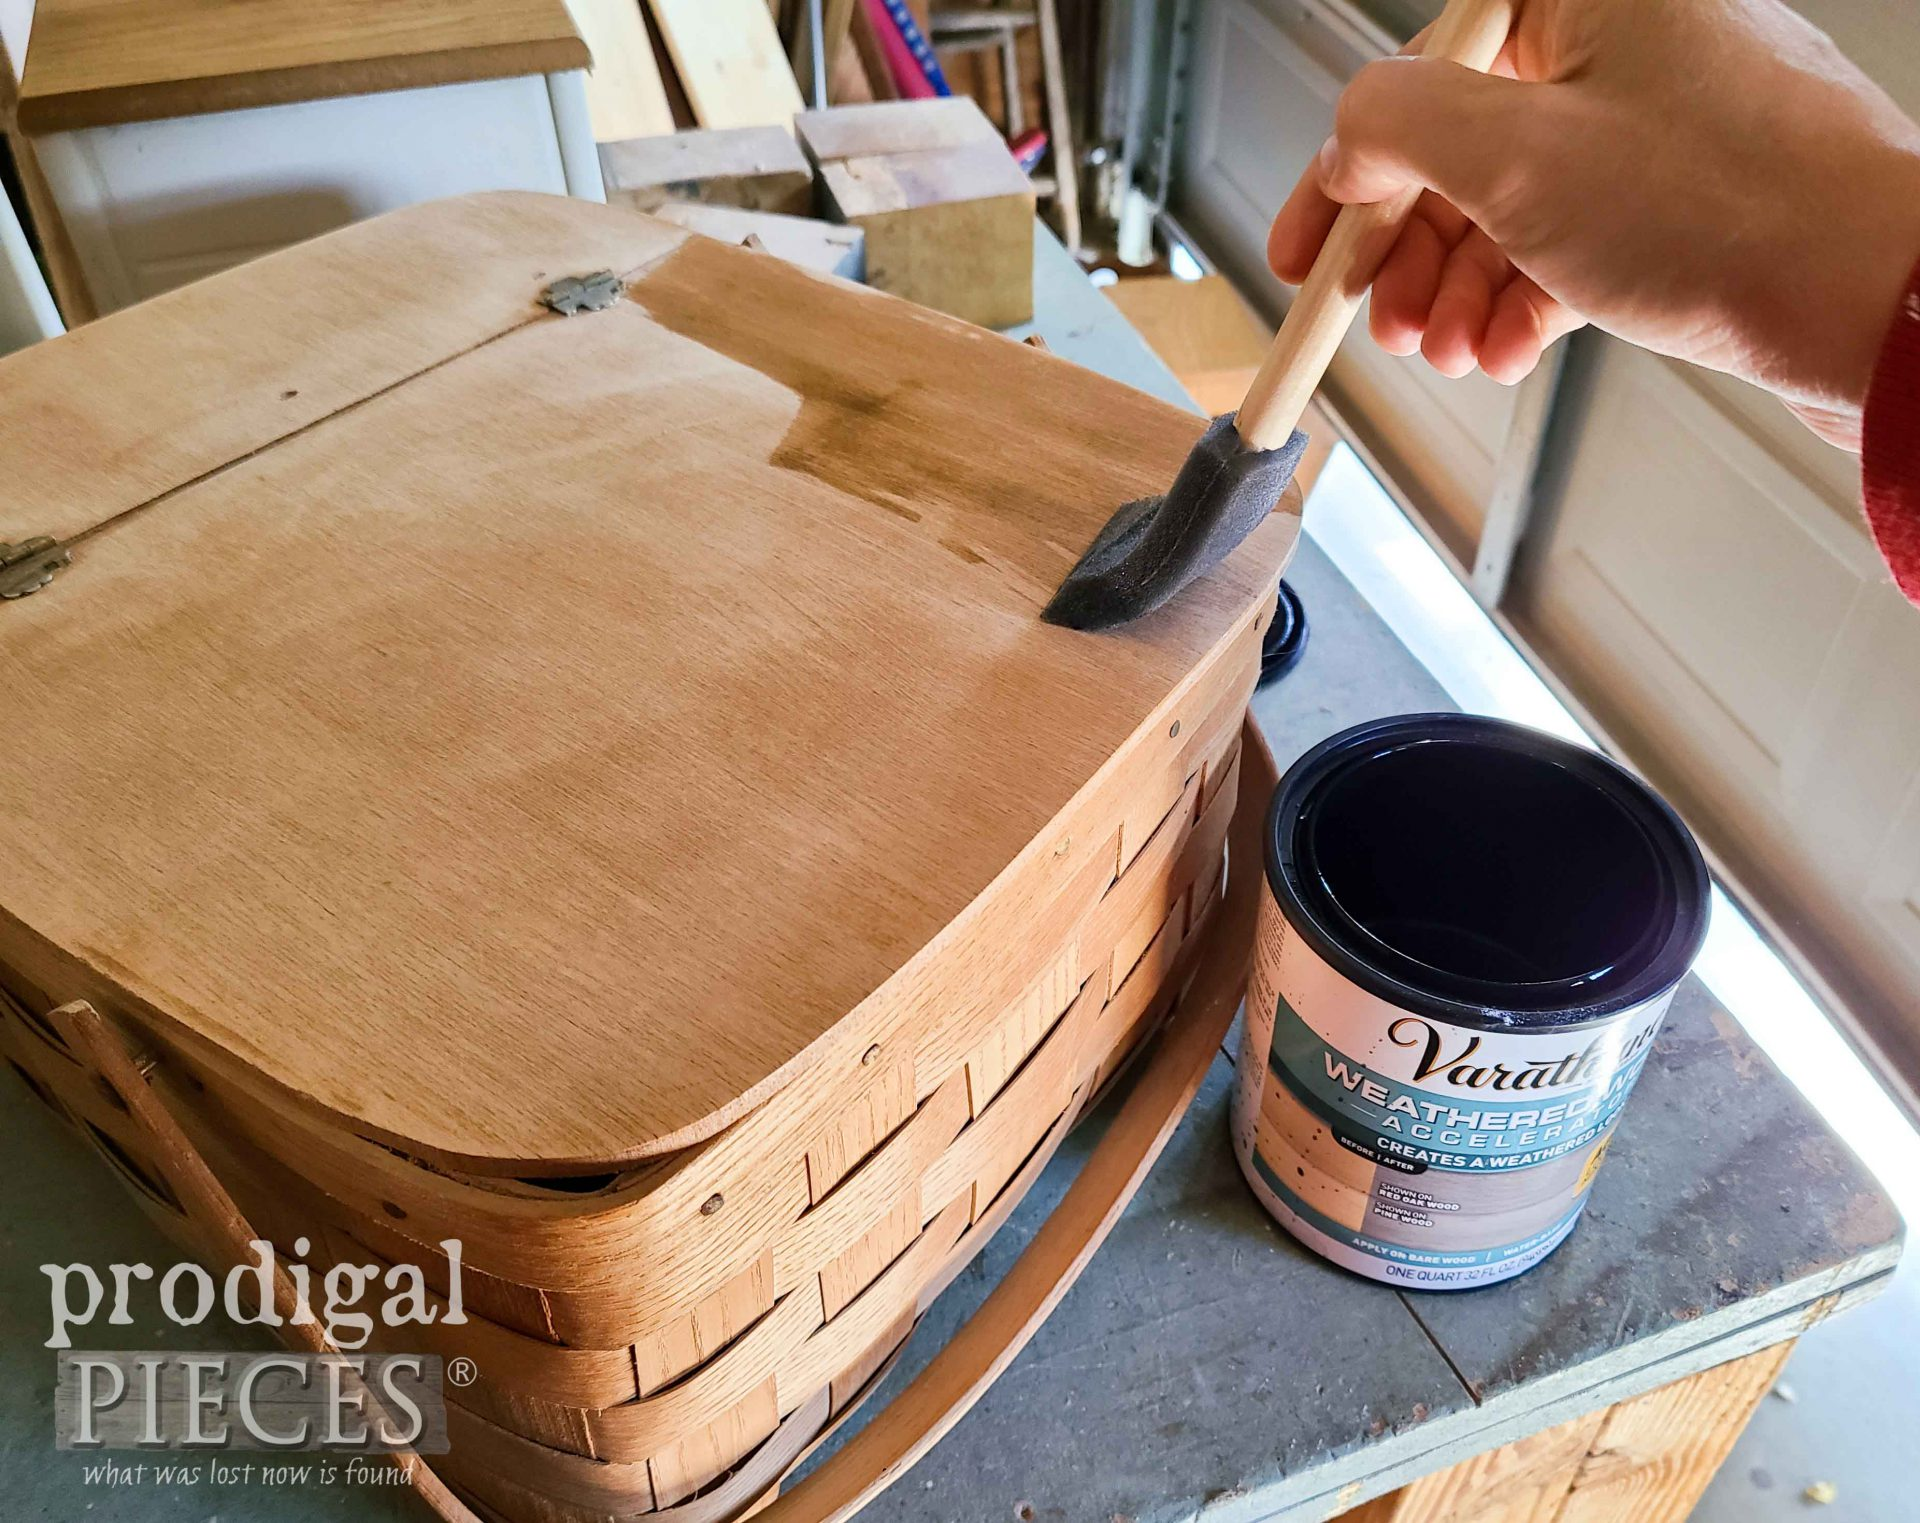 Staining Upcycled Picnic Baskets with Aged Wood Reactive Stain by Larissa of Prodigal Pieces | prodigalpieces.com